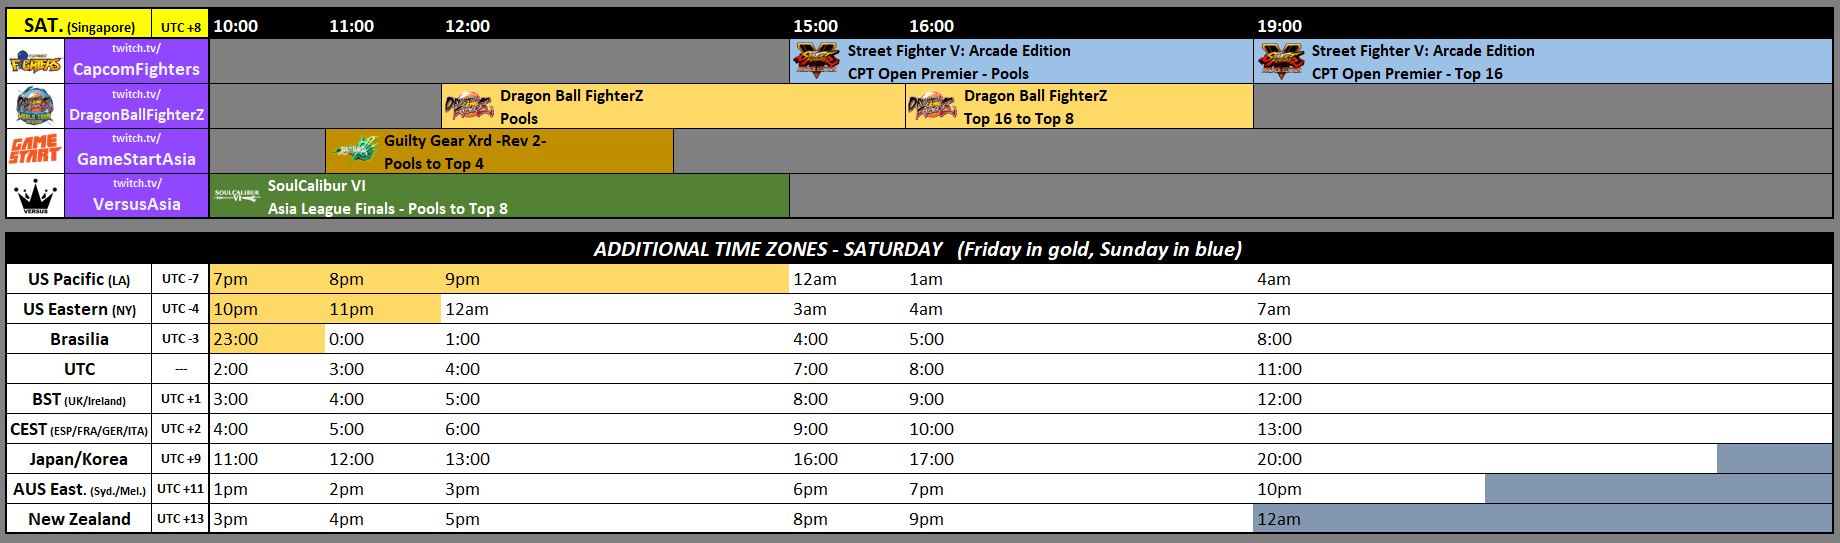 SEA Major 2019 Event Schedule 1 out of 2 image gallery